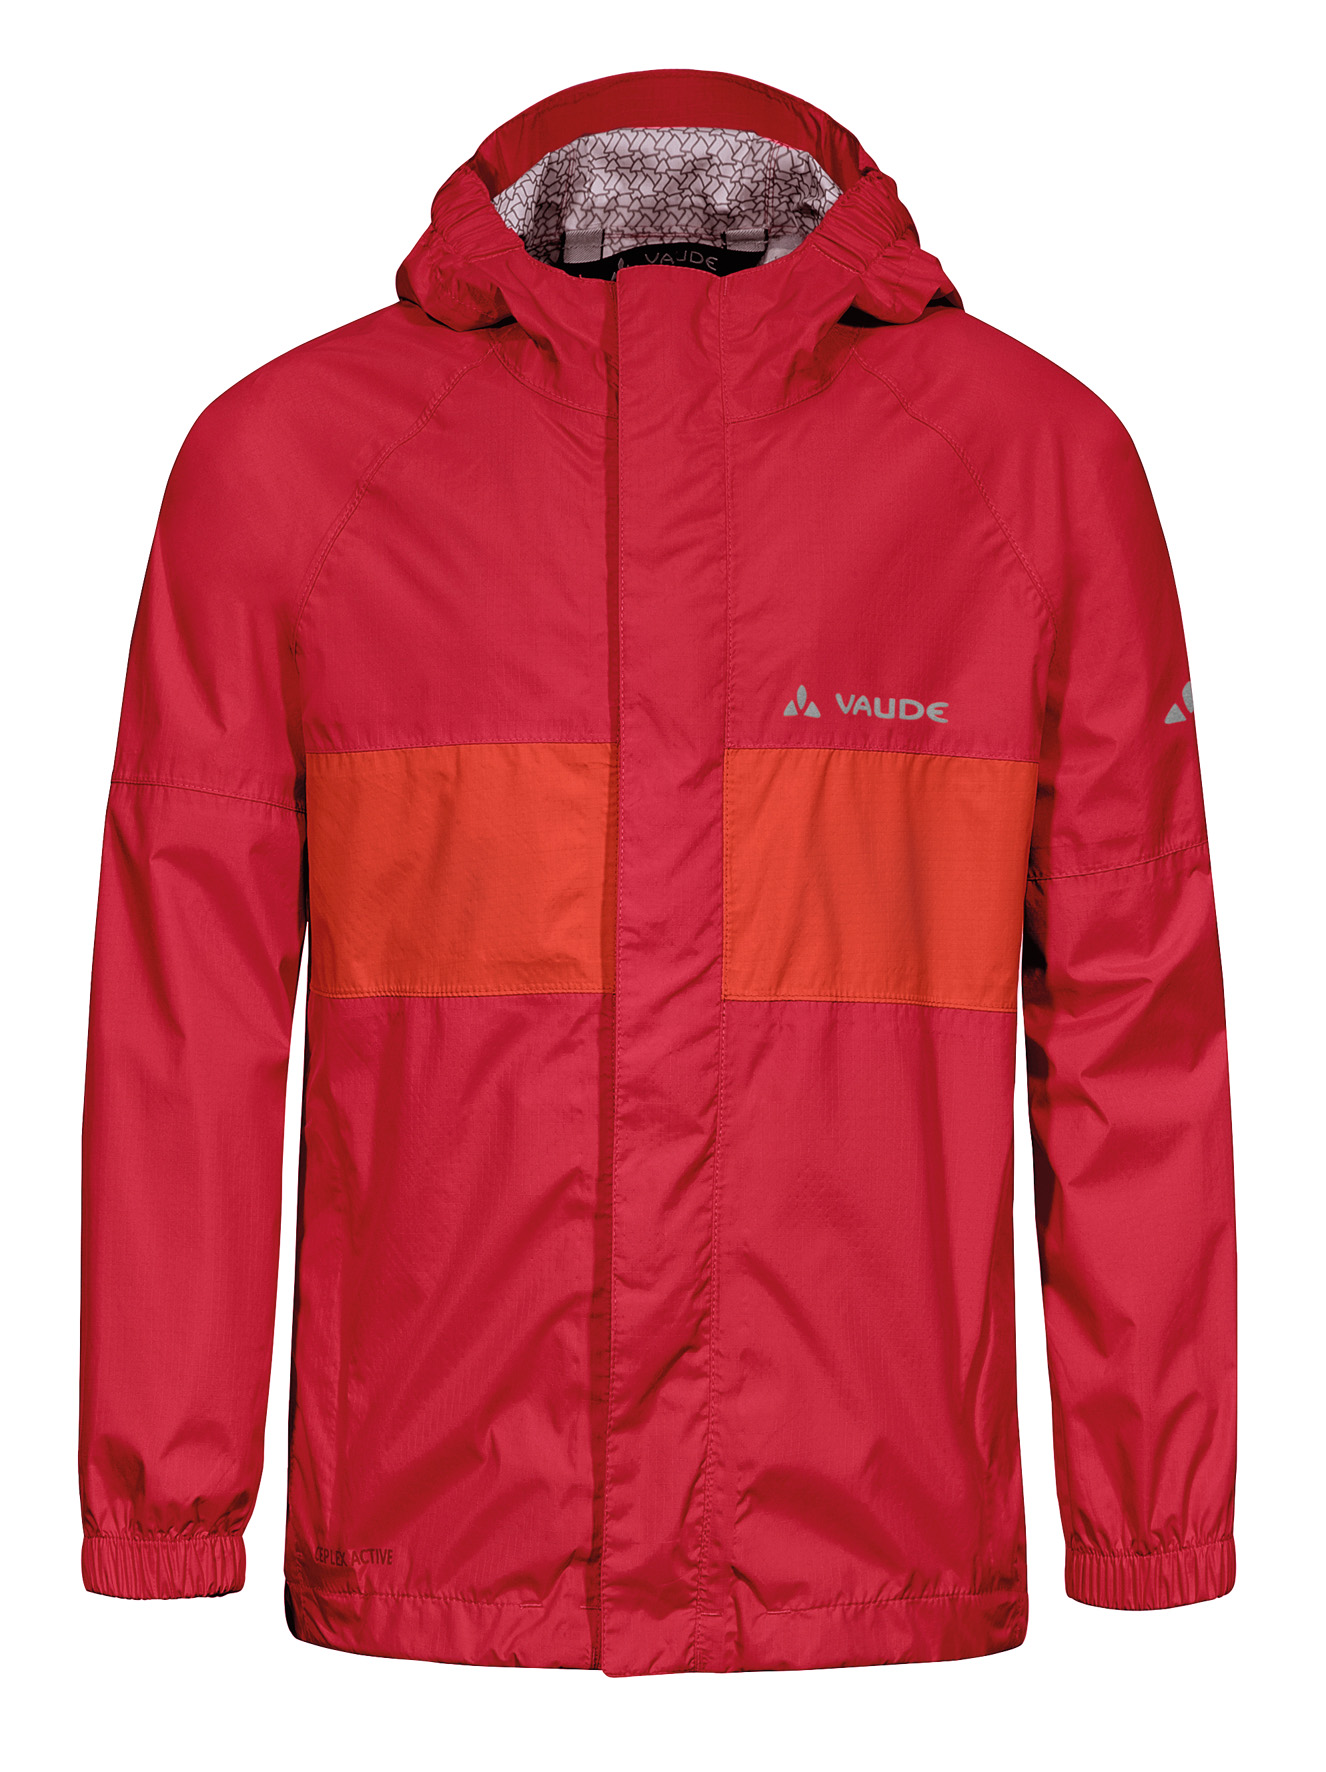 VAUDE Kids Grody Jacket II red Größe 110/116 - schneider-sports